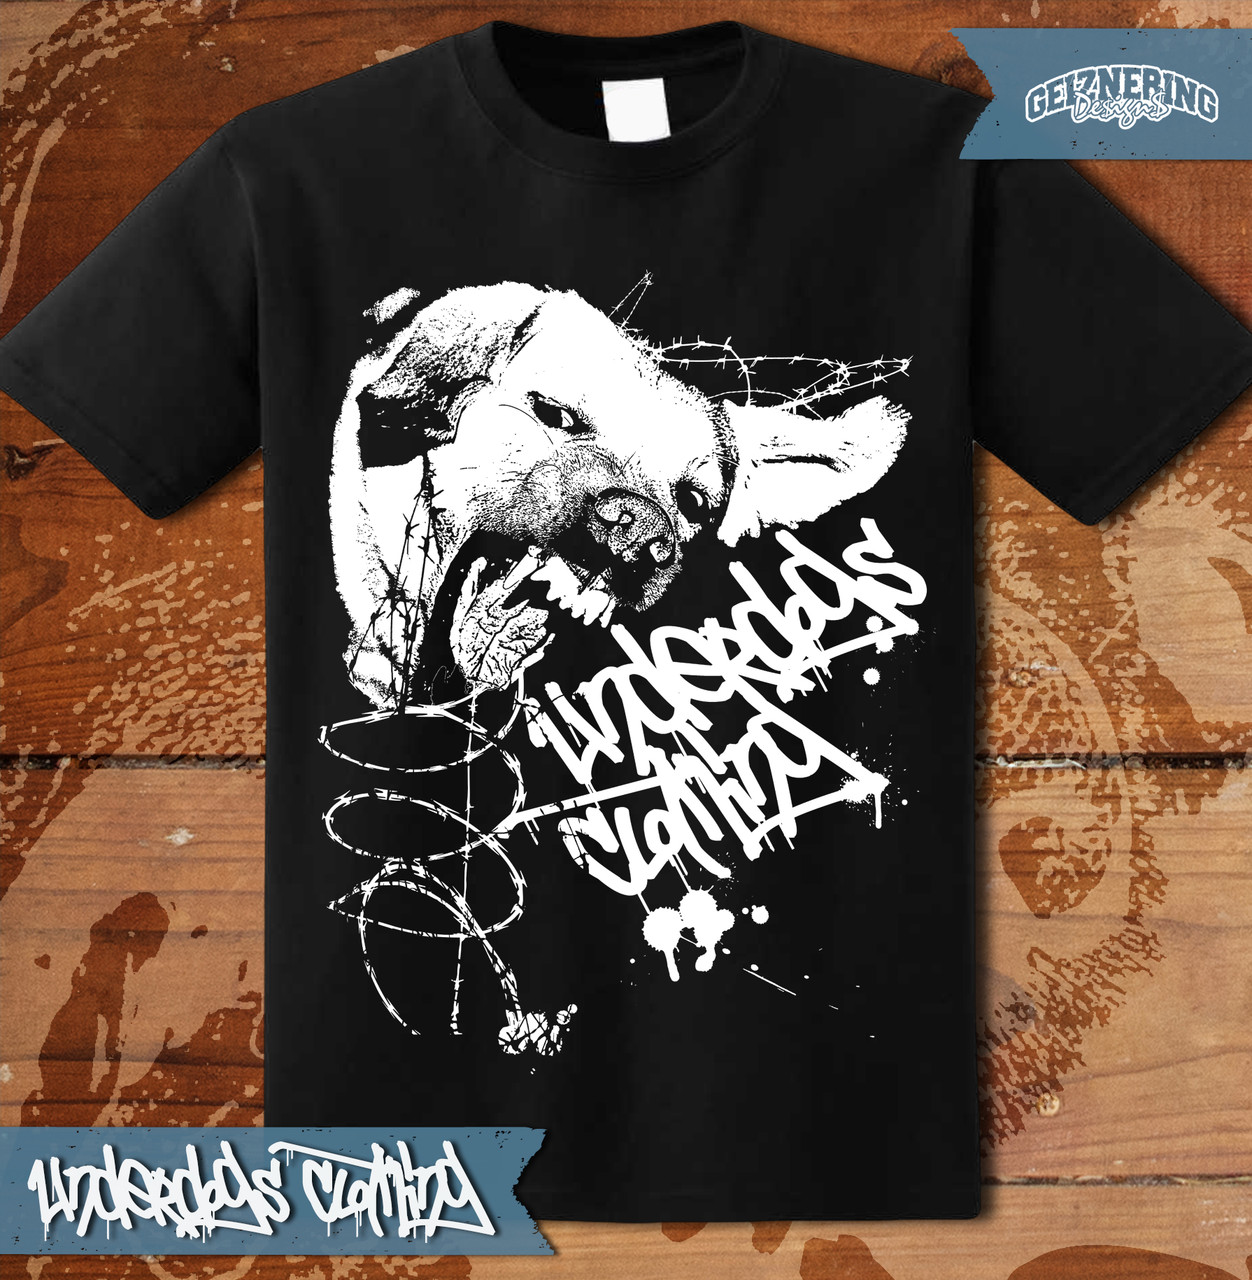 T-Shirt-Design - UNDERDOGS CLOTHING